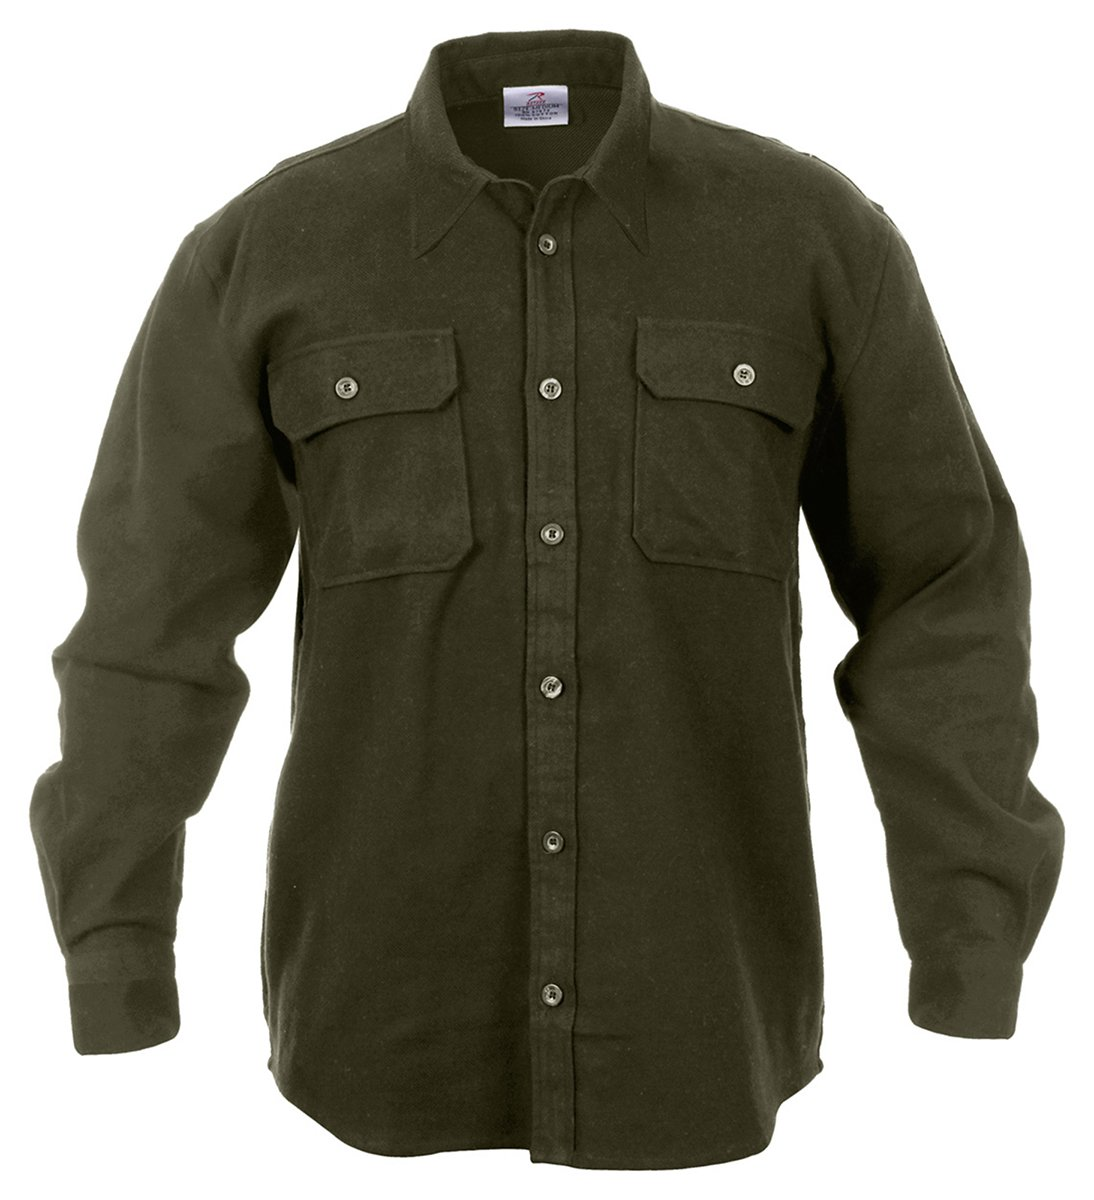 1910s Men's Working Class Clothing Rothco Heavy Weight Flannel Shirt $43.19 AT vintagedancer.com